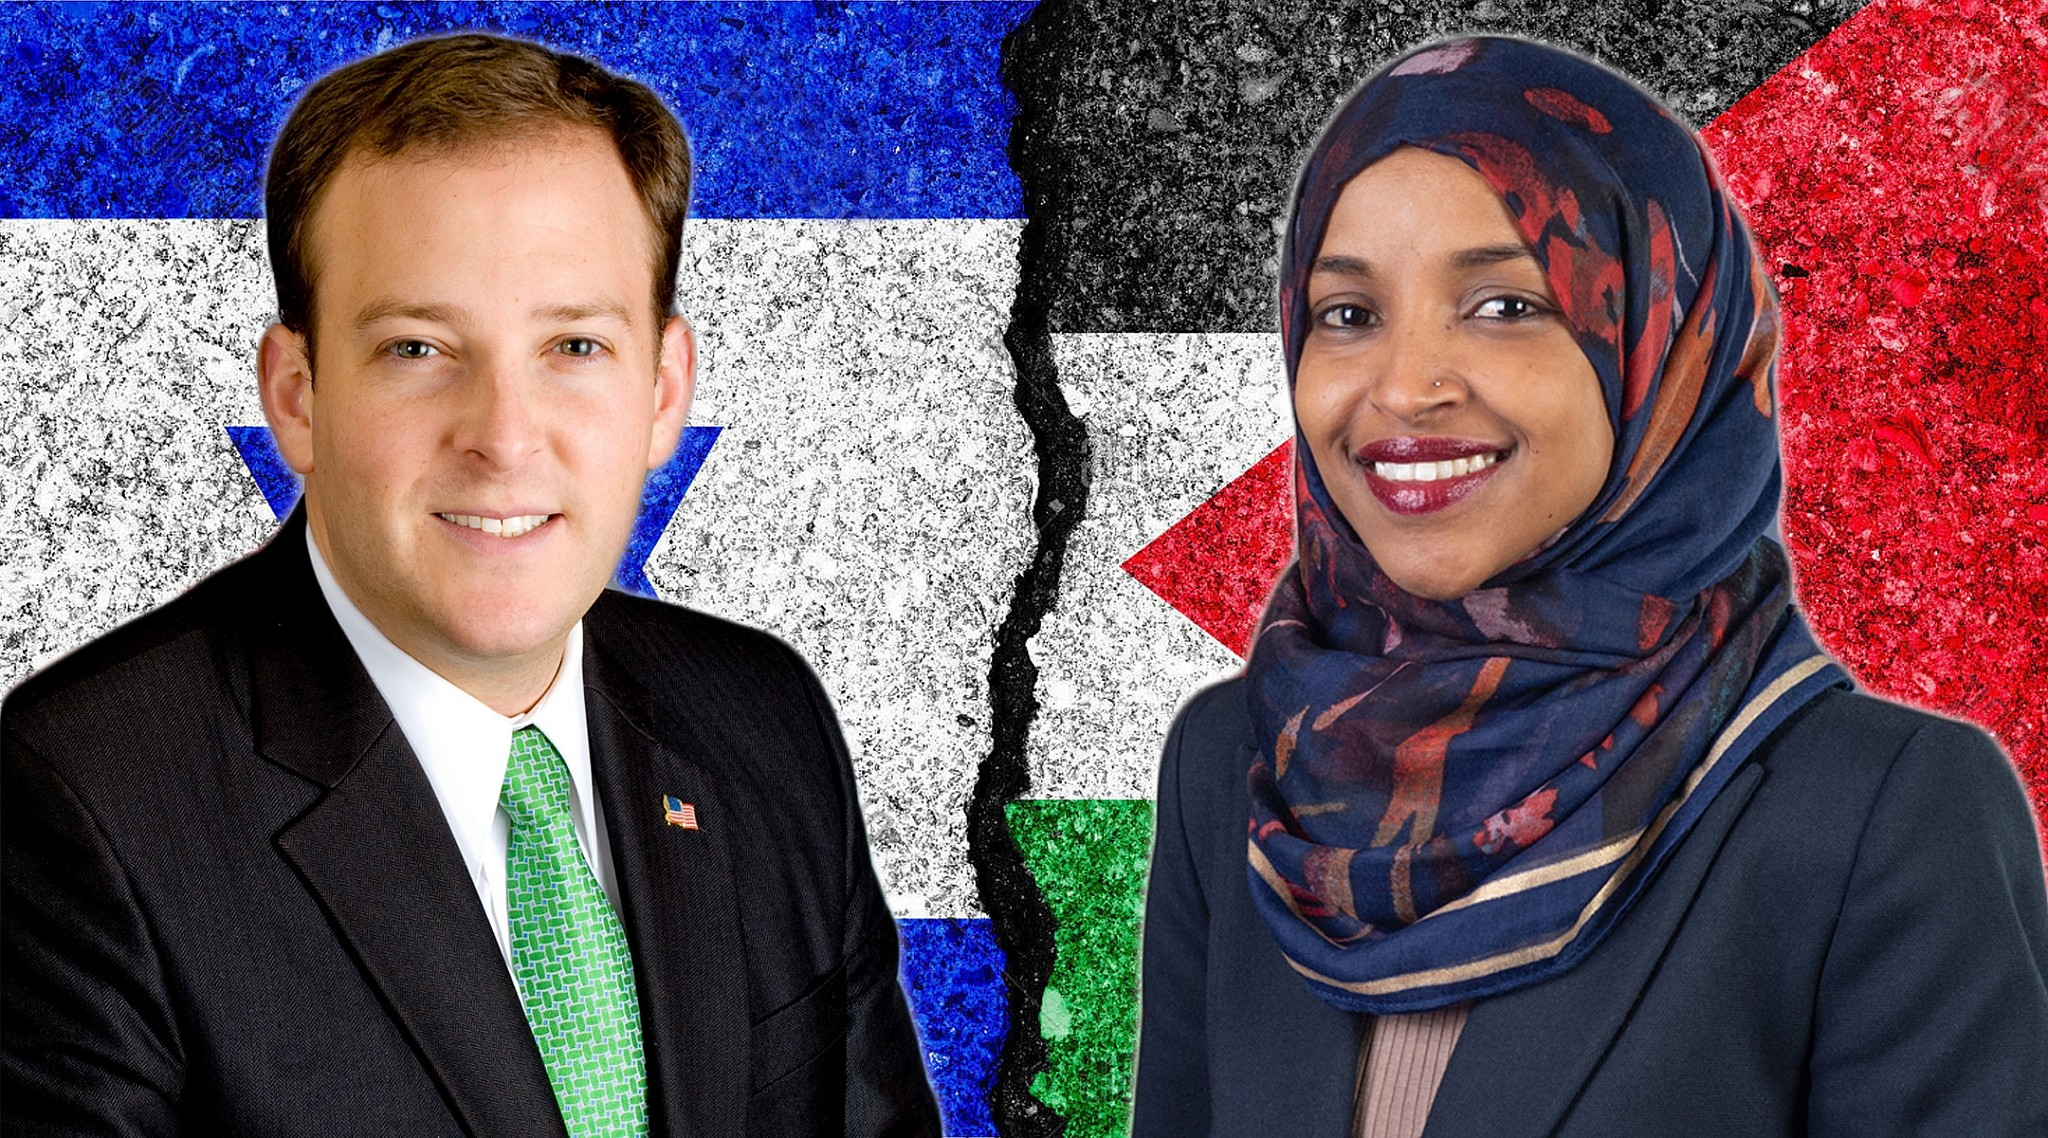 Rep. Omar: 'I Almost Chuckle' When Israel Is Called 'A Democracy'